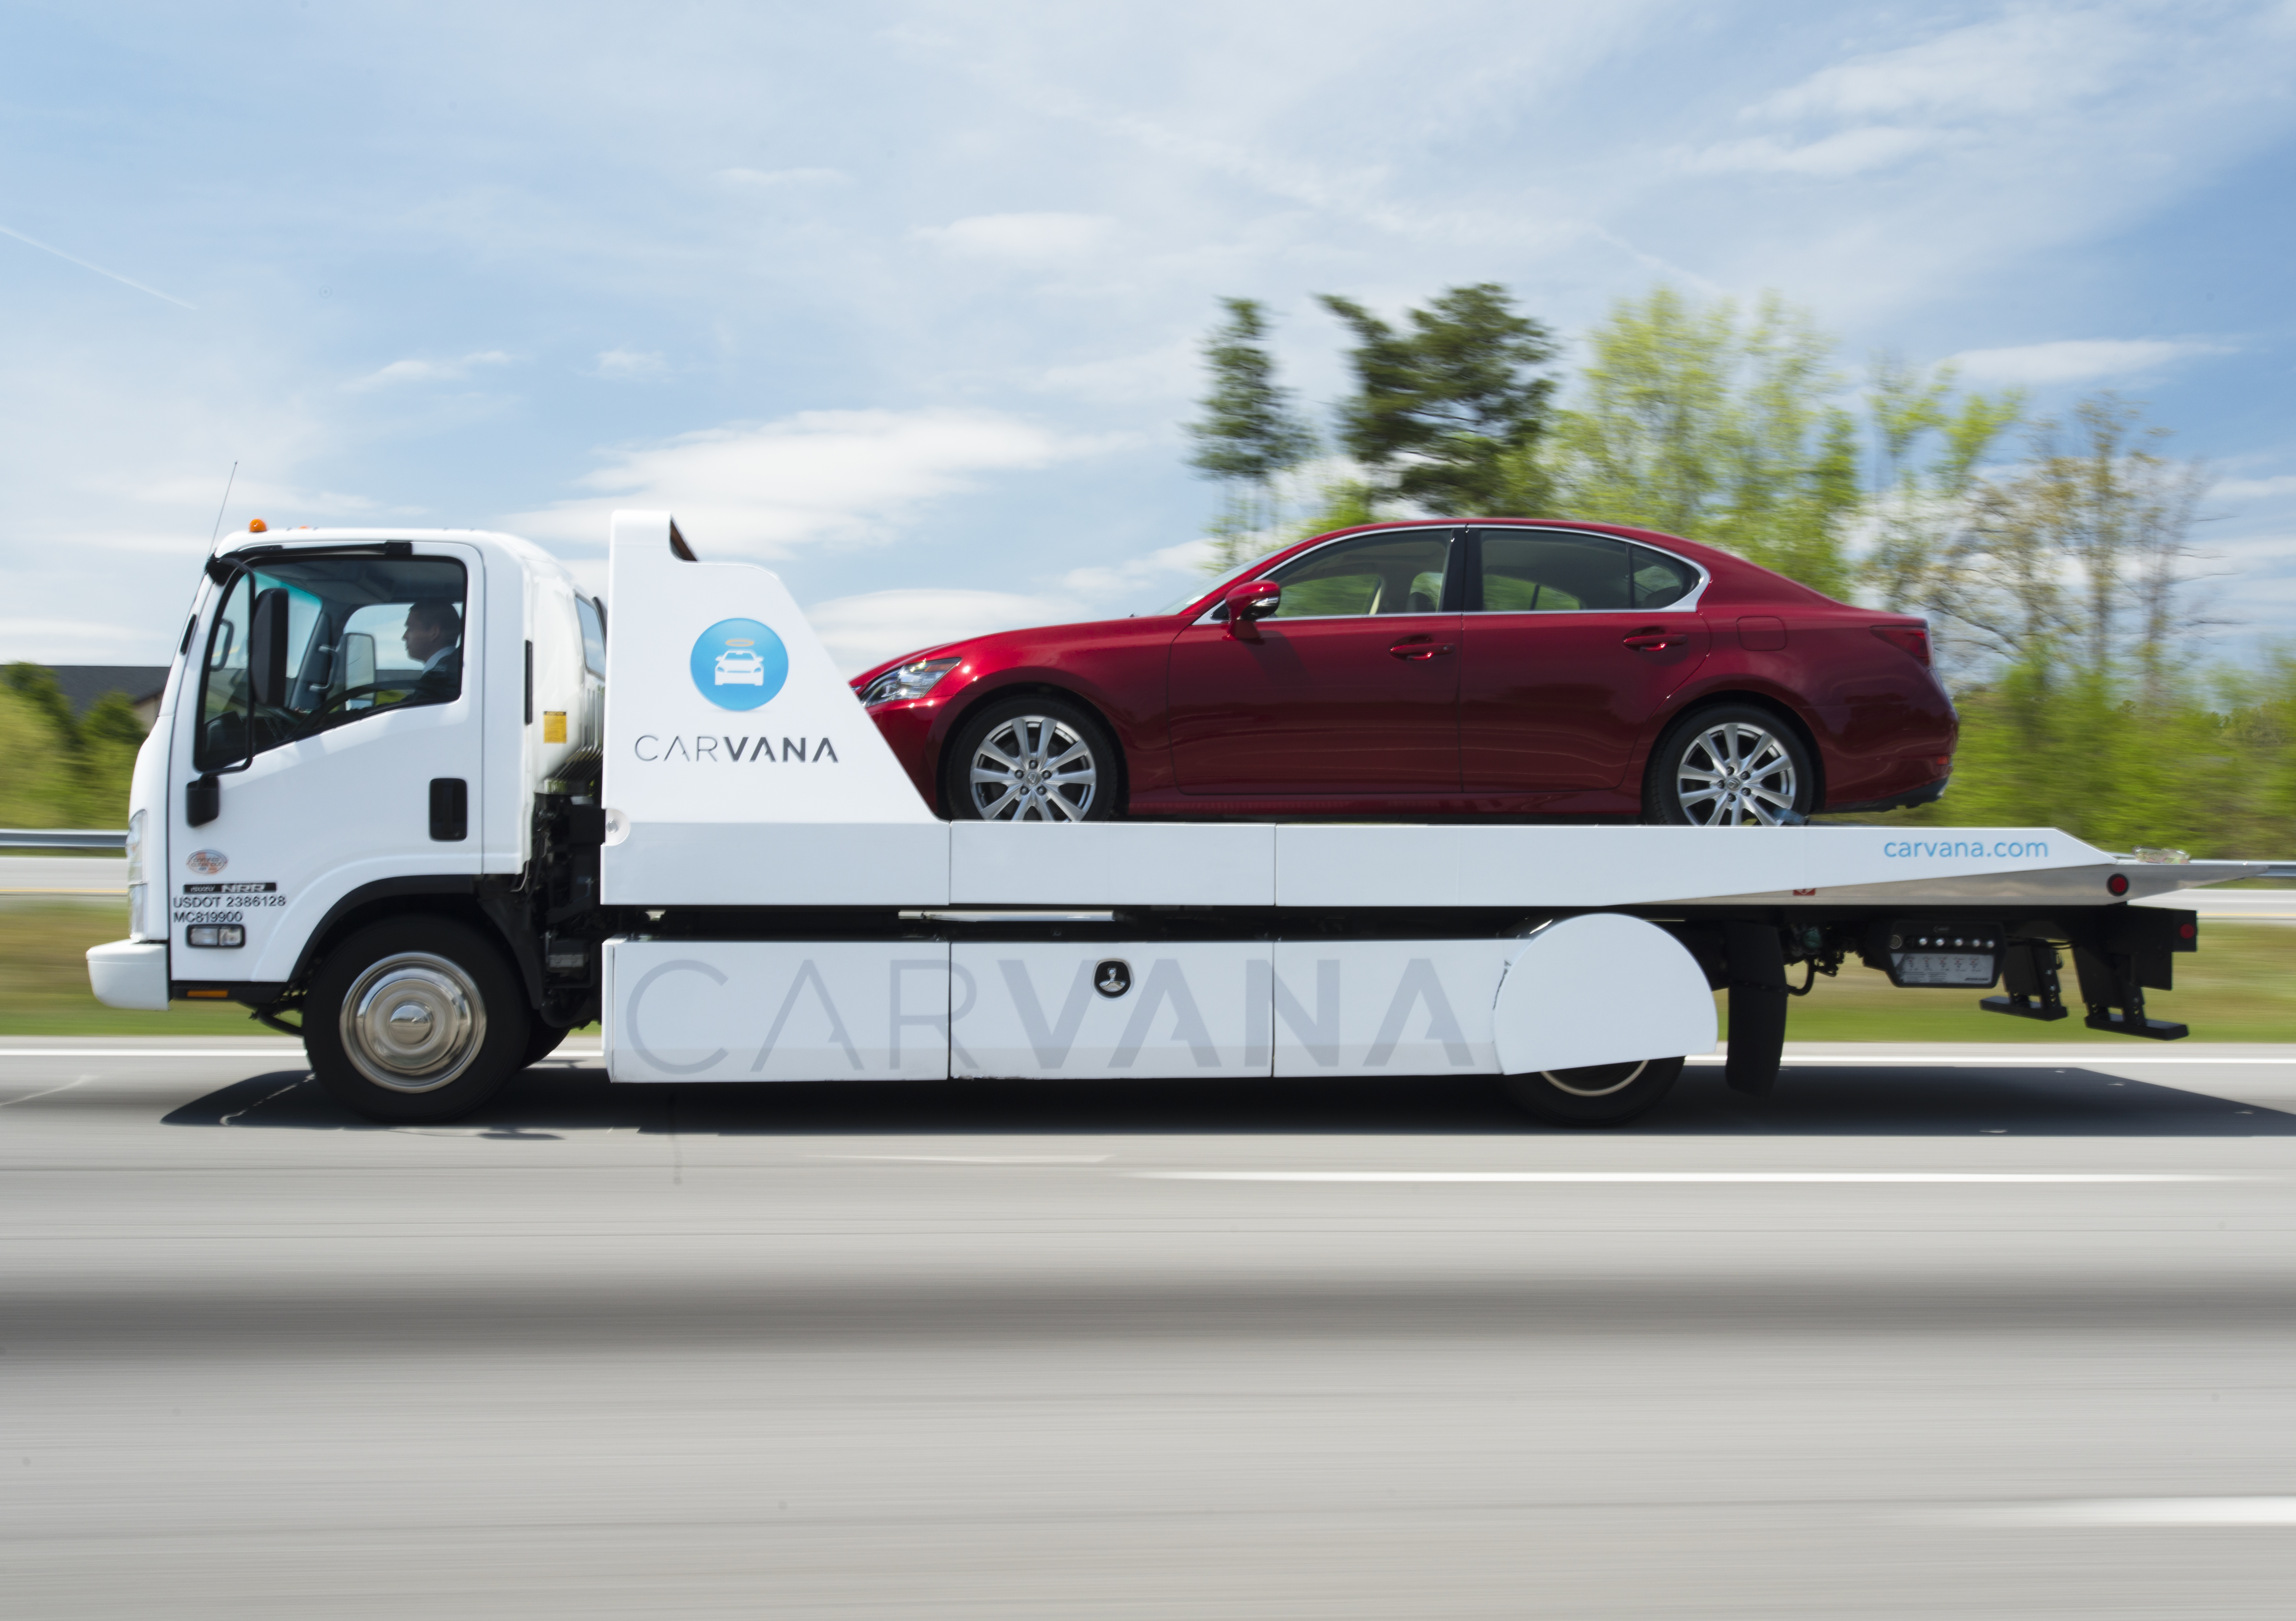 Carvana Has Georgia on Its Mind Launching Presence in Macon and